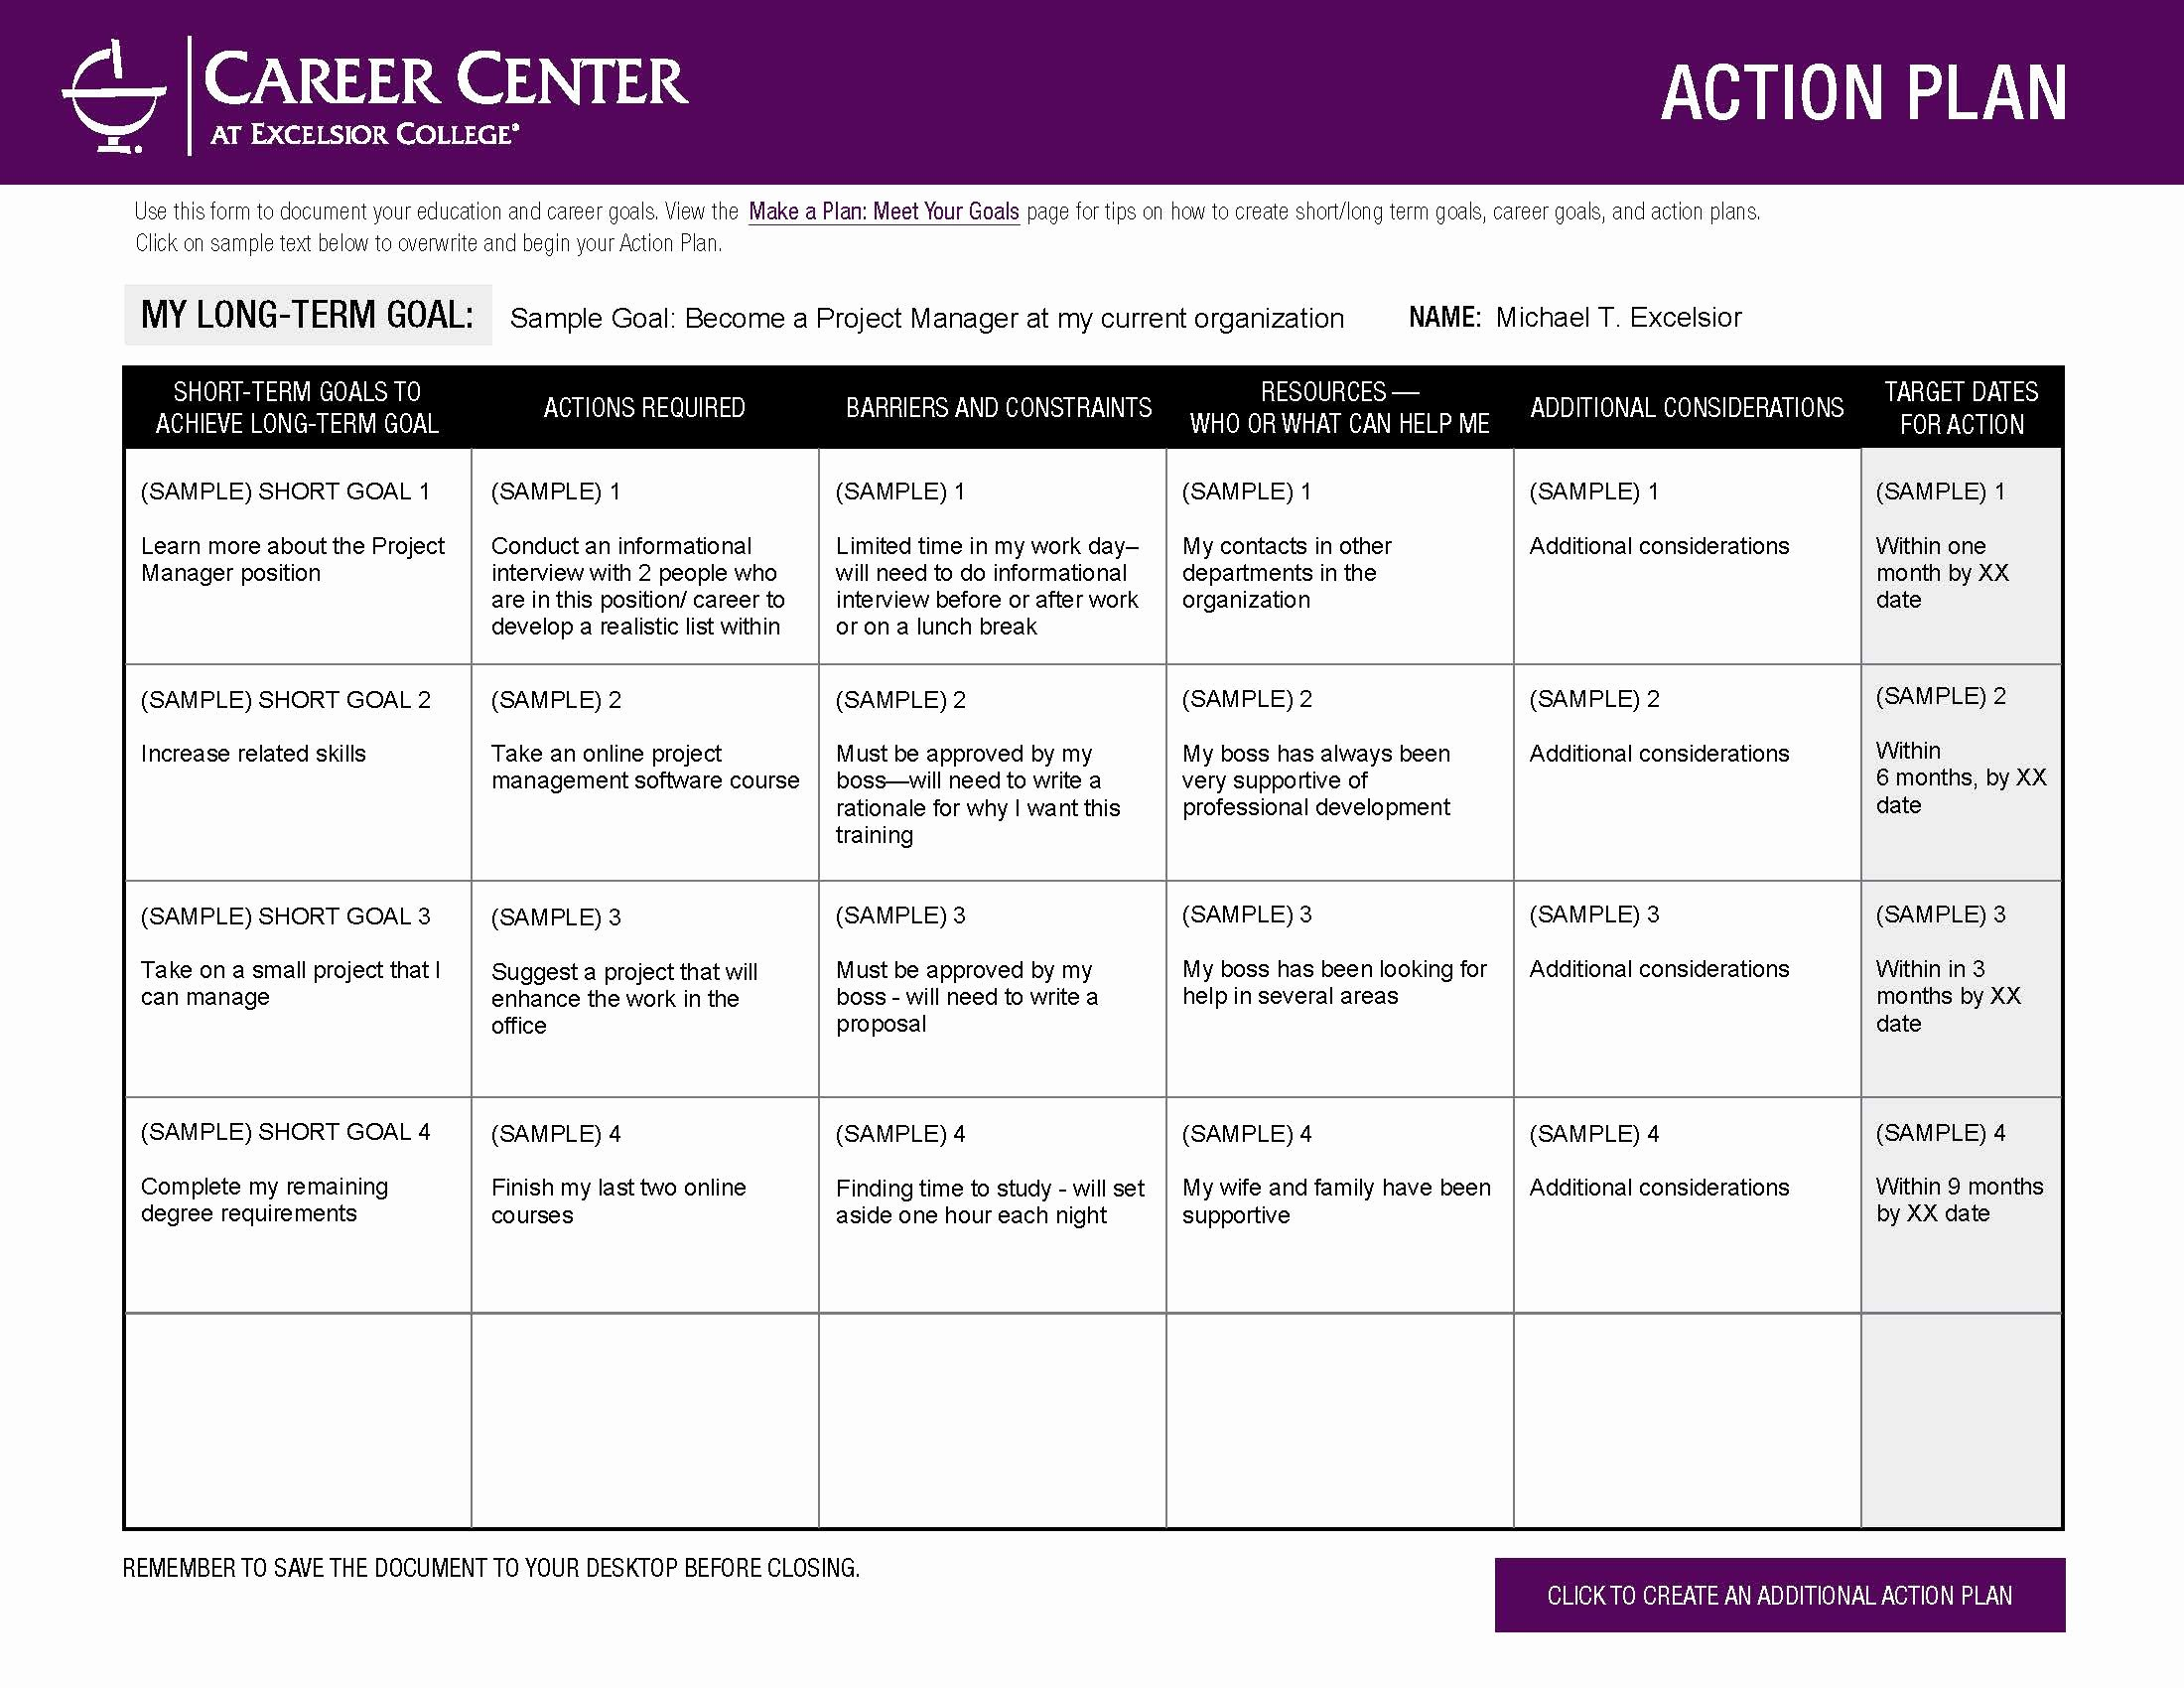 Employment Action Plan Template Lovely Excelsior College Make A Plan – Meet Your Goals